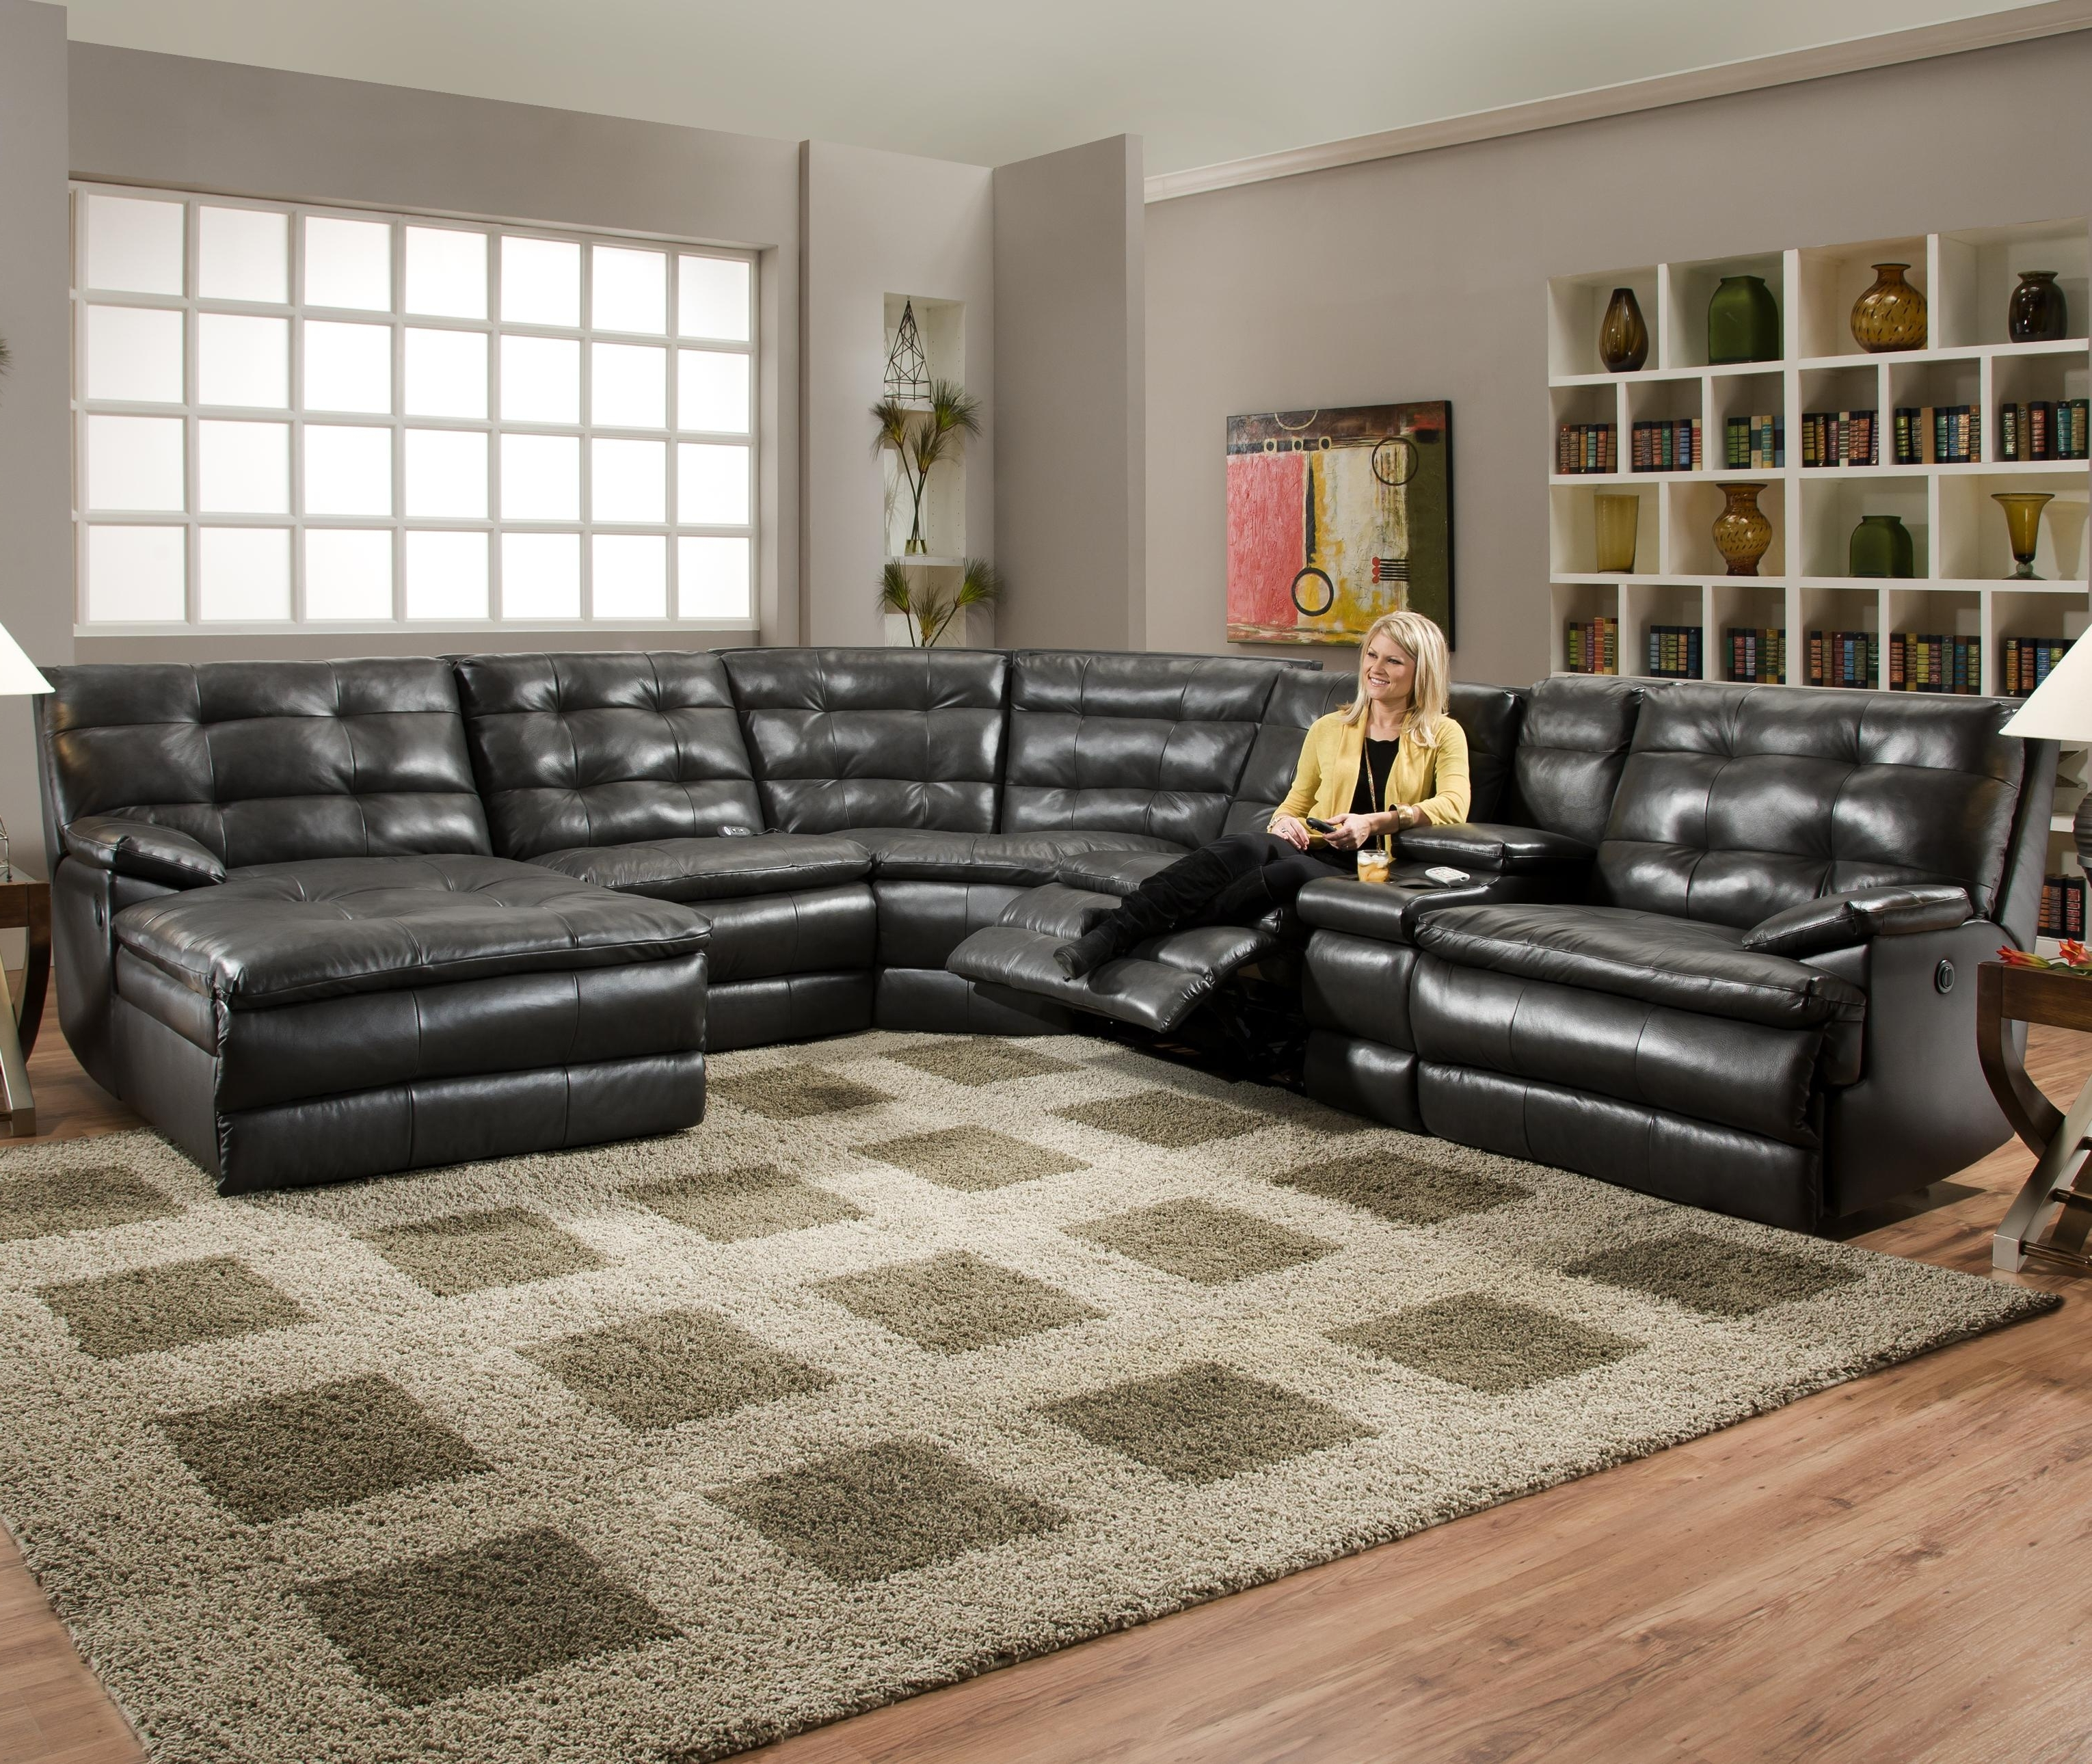 Sectional Sofas In Toronto Pertaining To Preferred Big Sofas Sectionals – Hotelsbacau (View 10 of 15)